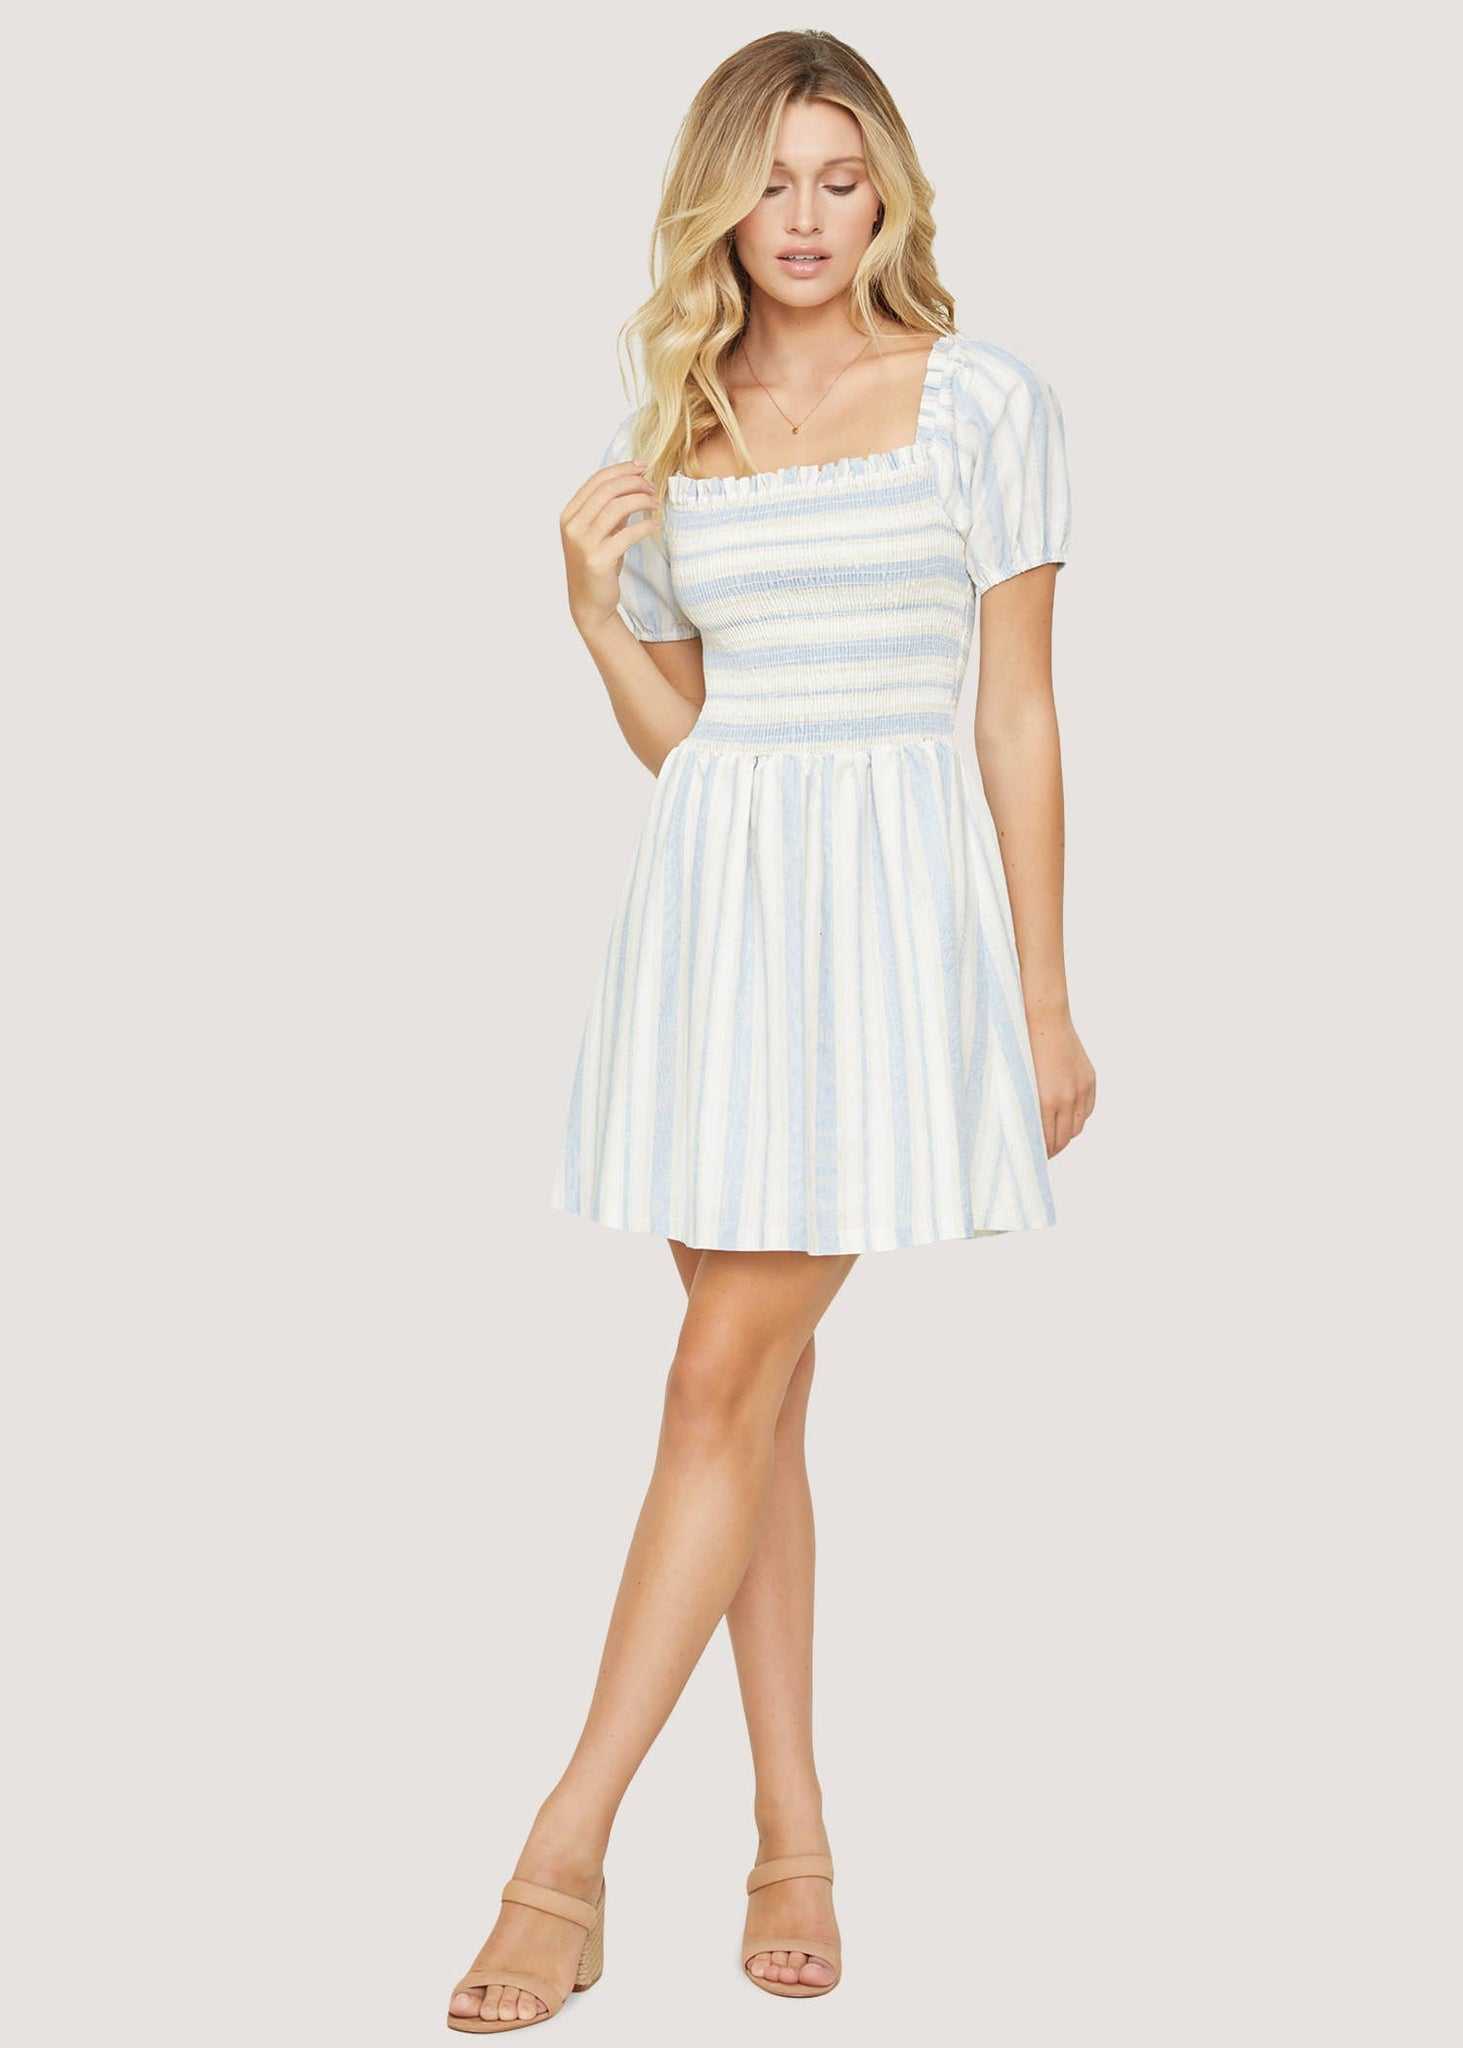 Beachside Pier Mini Dress